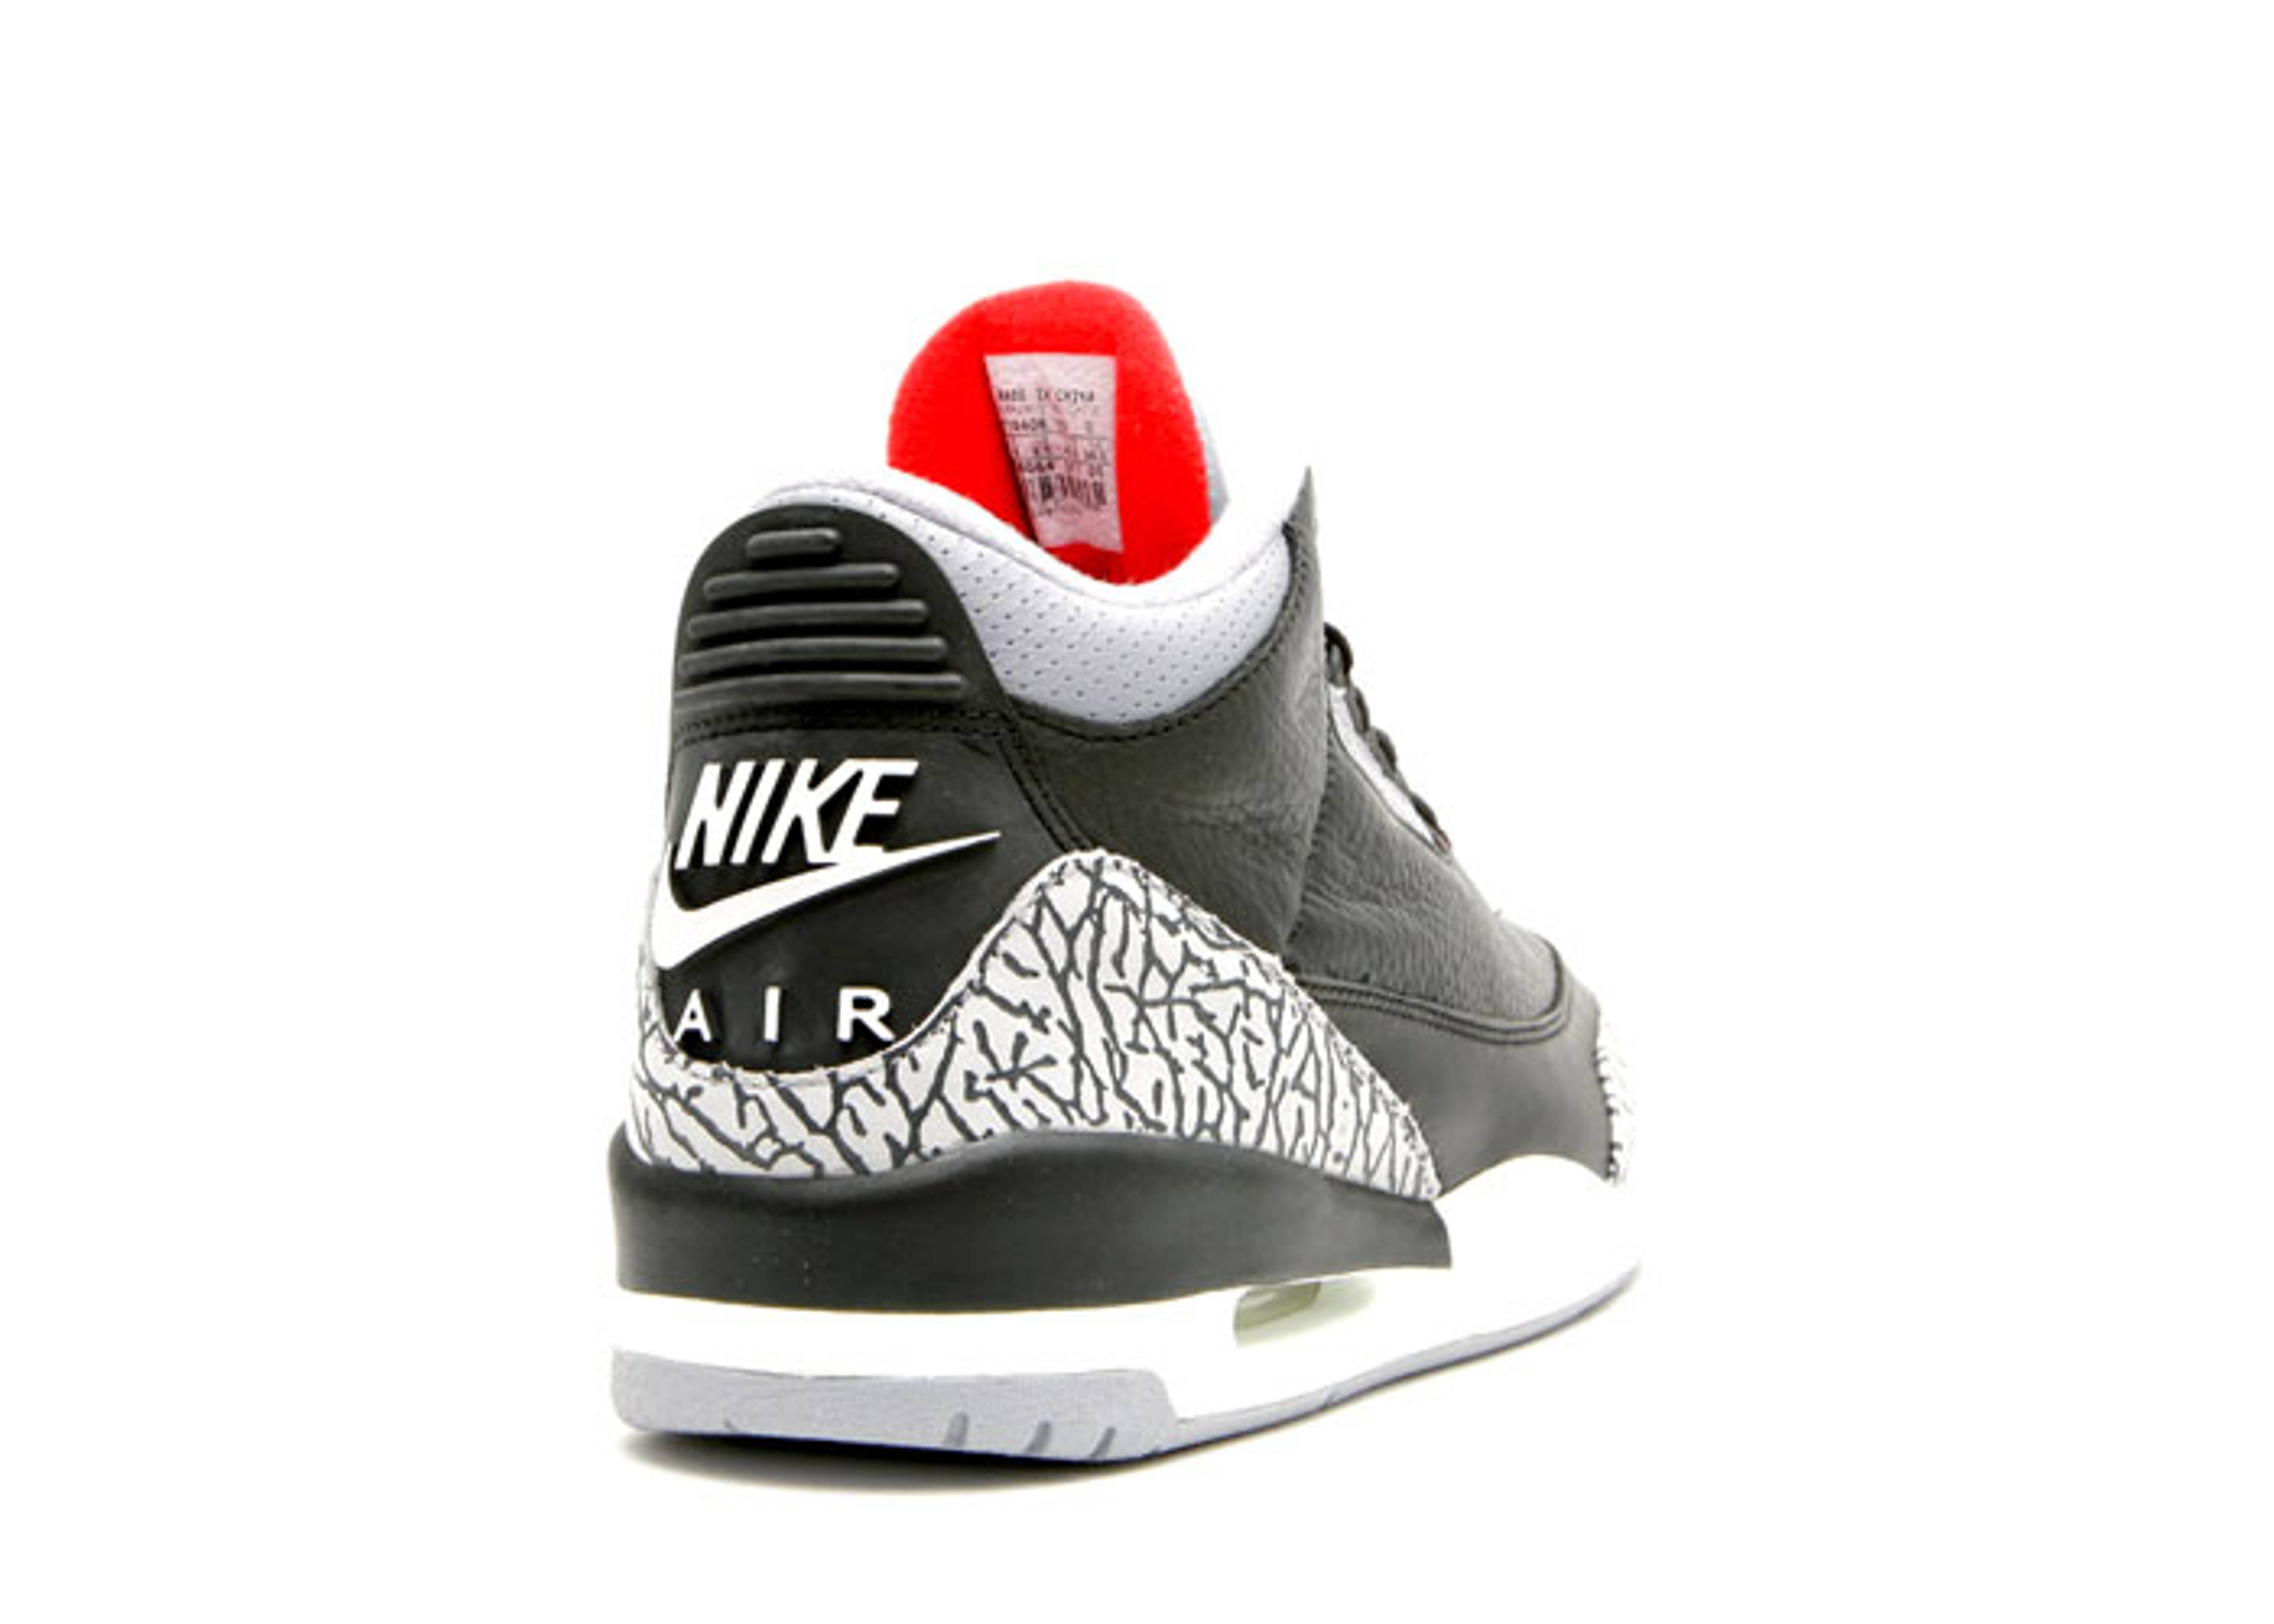 29e706ff54e099 Air Jordan 3 Retro